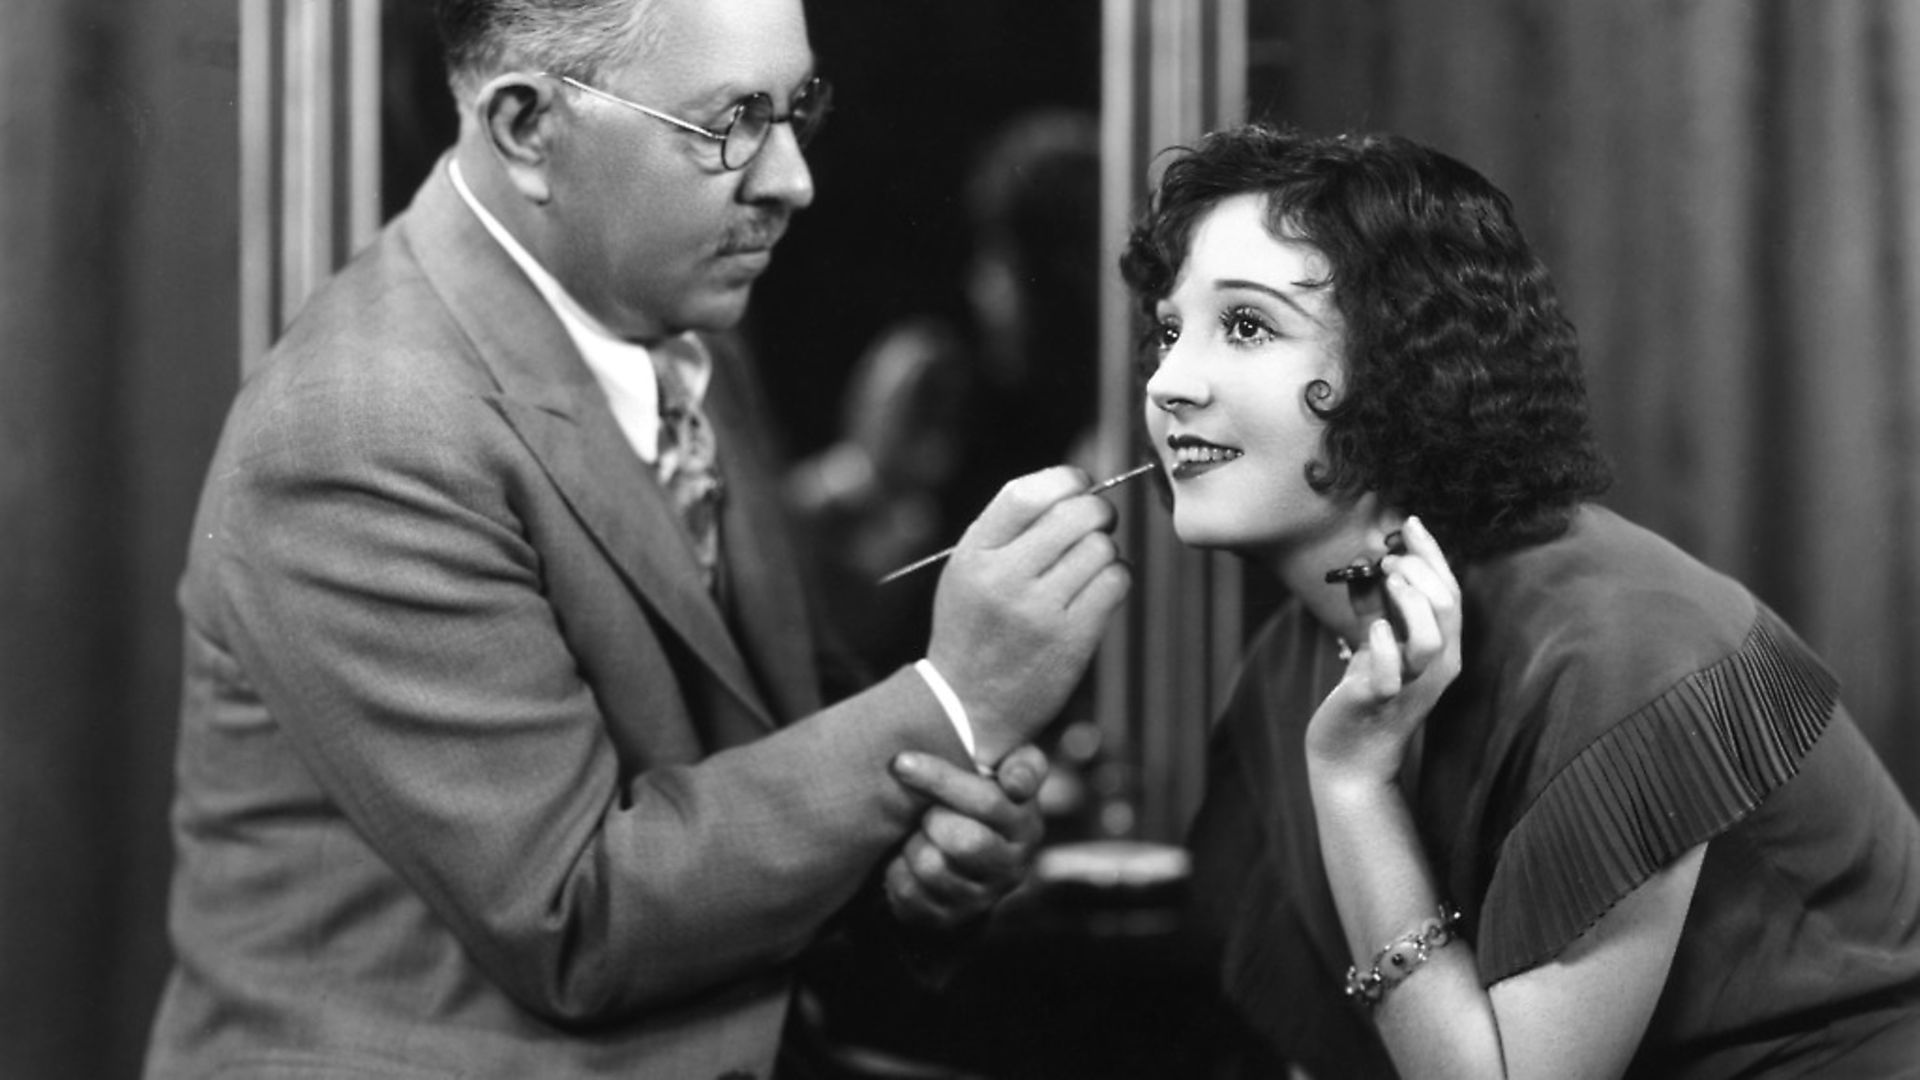 Max Factor, Polish businessman and founder of cosmetics company, Max Factor, demonstrates the technique of applying lipstick on US silent film actress Madge Bellamy. Photo: Margaret Chute/Hulton Archive/Getty Images - Credit: Getty Images